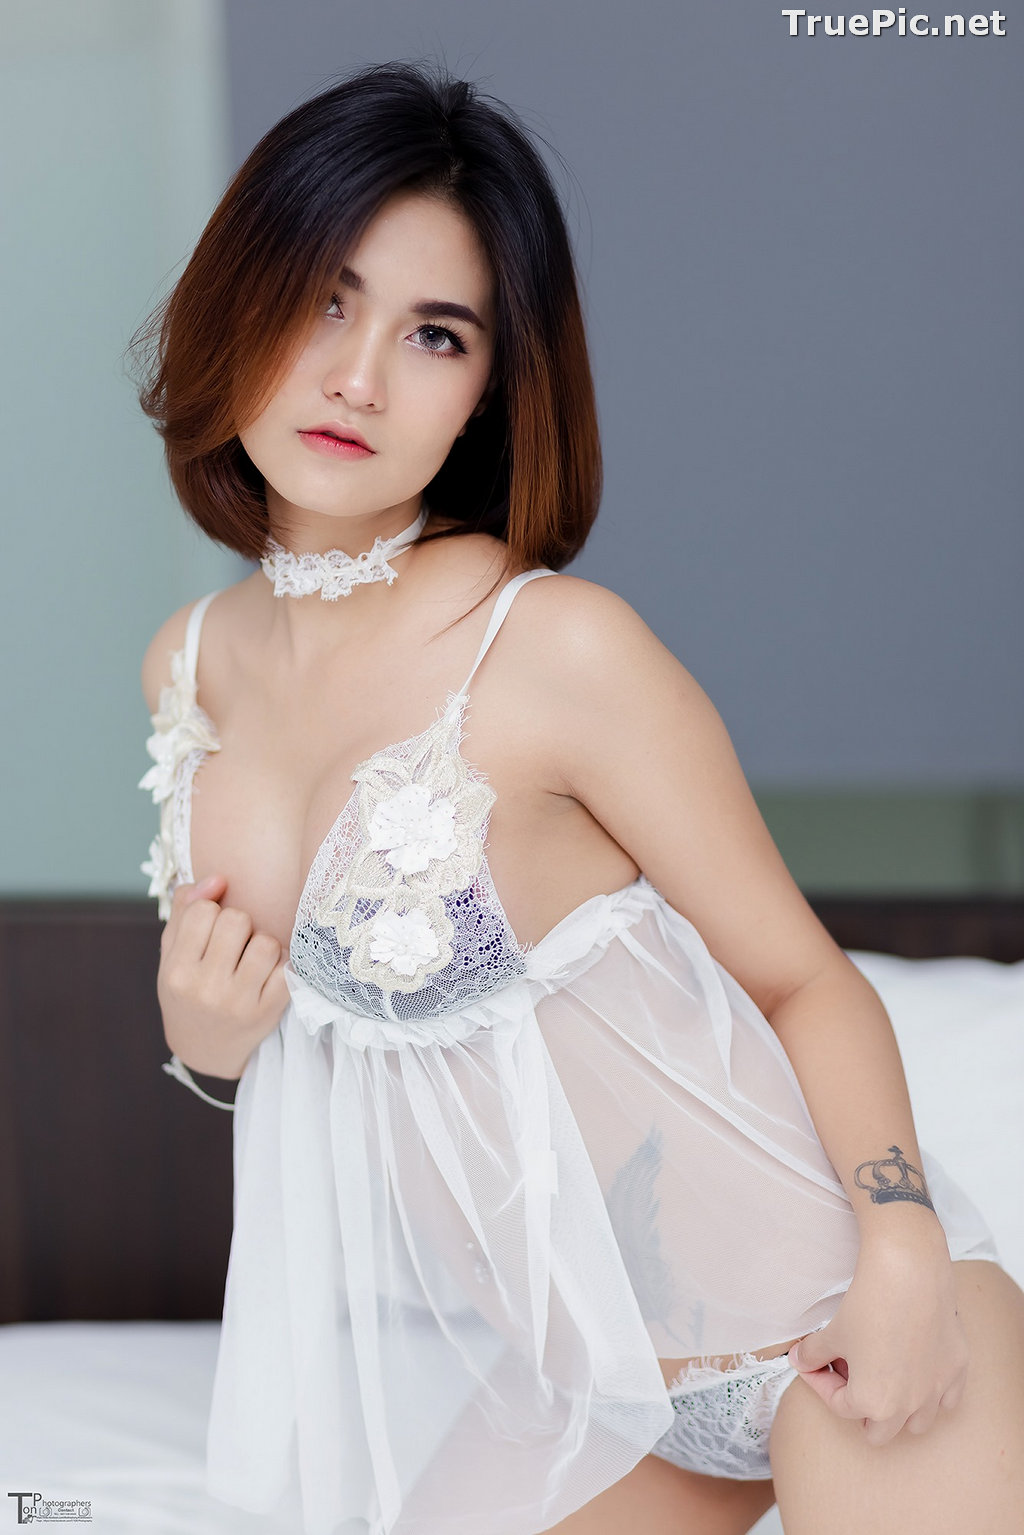 Image Thailand Sexy Model - Witsutar Ruechar - Beautiful Young Lady - TruePic.net - Picture-2